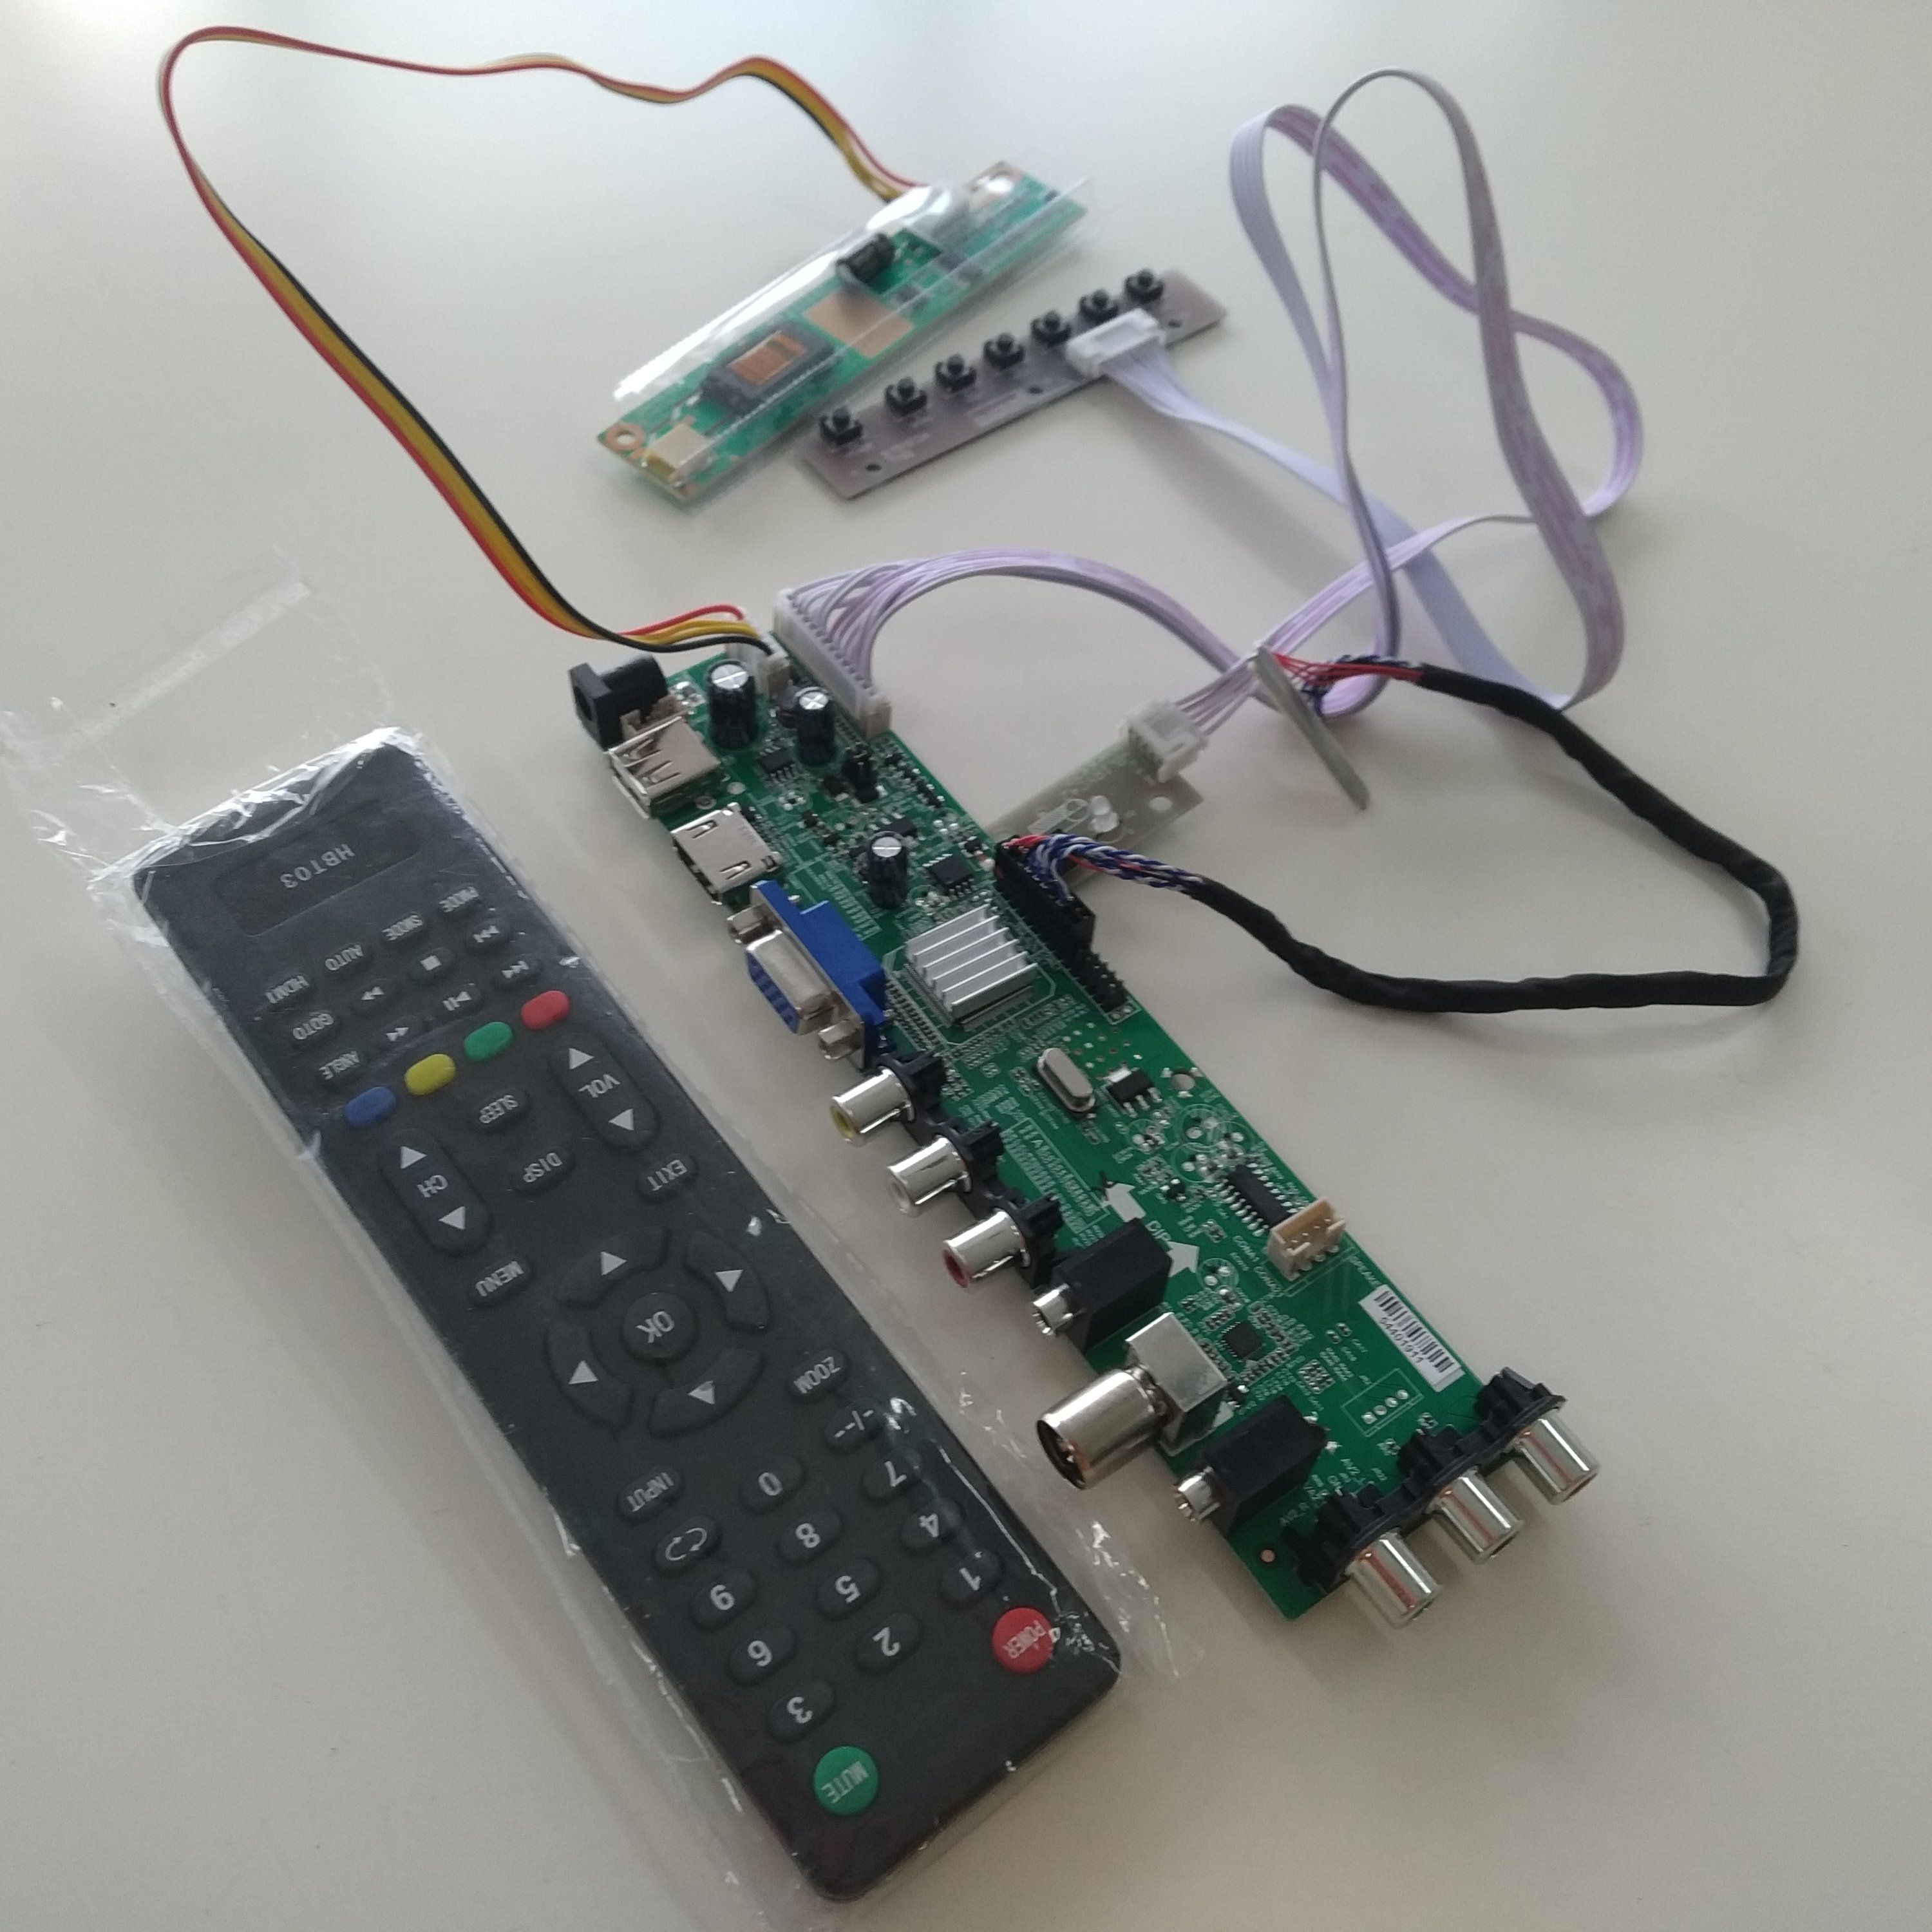 Kit for N154I2-L02 Rev.C1 30pin <font><b>USB</b></font> <font><b>AV</b></font> digital 1280X800 Controller <font><b>board</b></font> DVB-T DVB-C <font><b>HDMI</b></font> <font><b>LCD</b></font> 1 CCFL 15.4